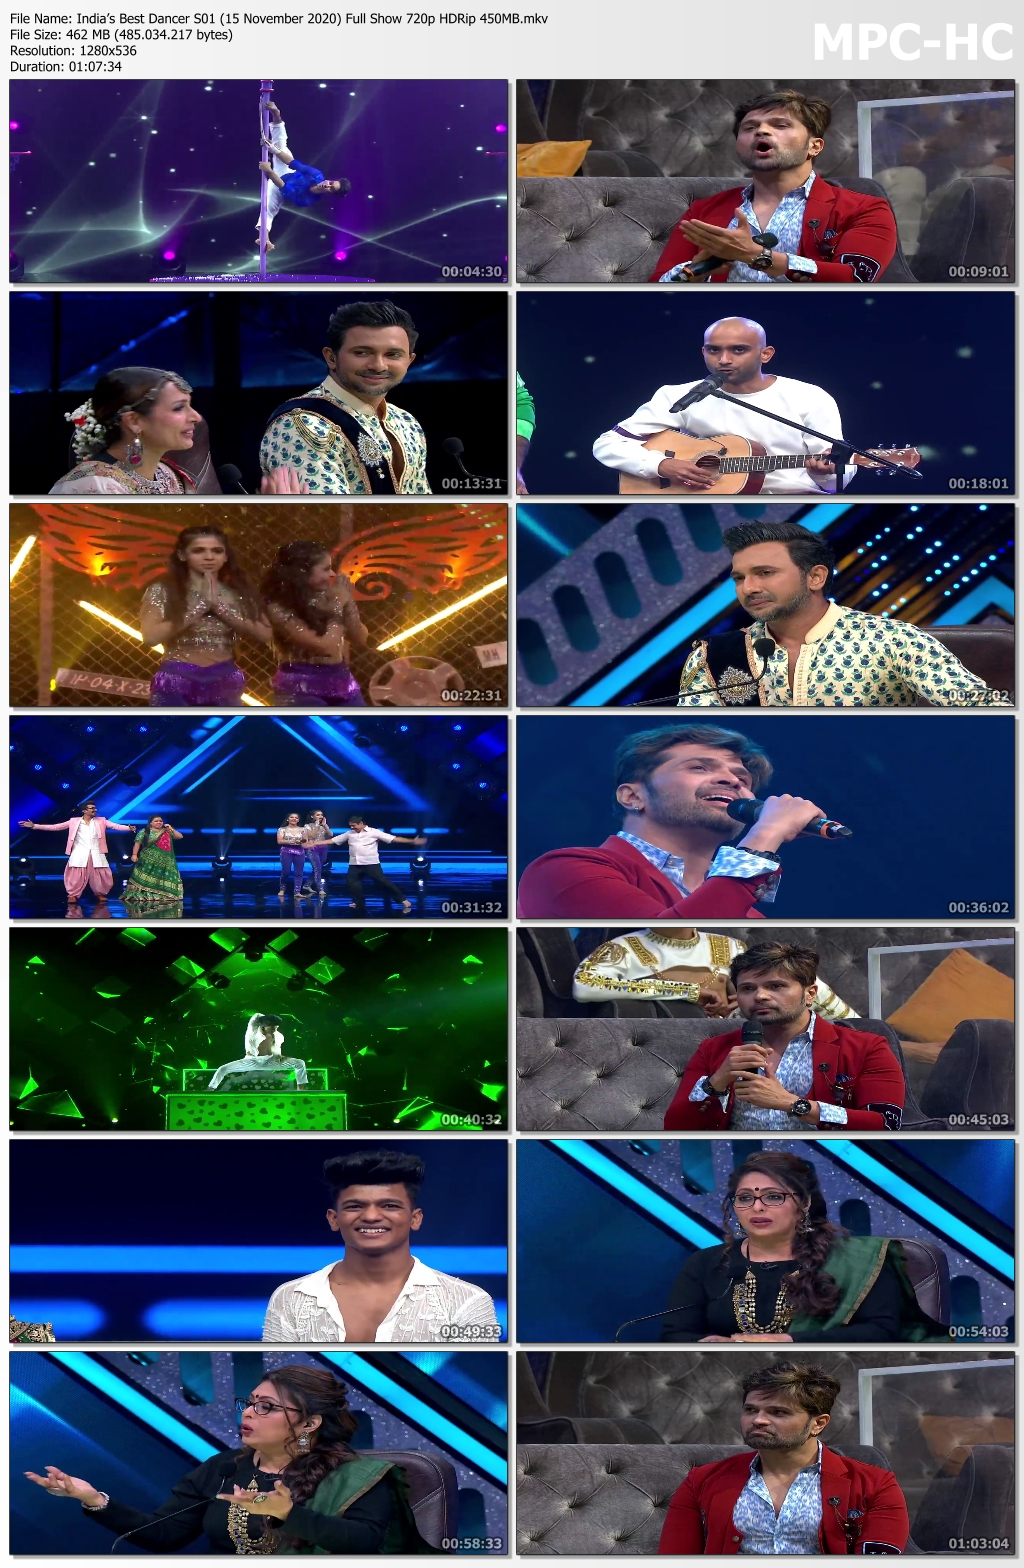 India-s-Best-Dancer-S01-15-November-2020-Full-Show-720p-HDRip-450-MB-mkv-thumbs